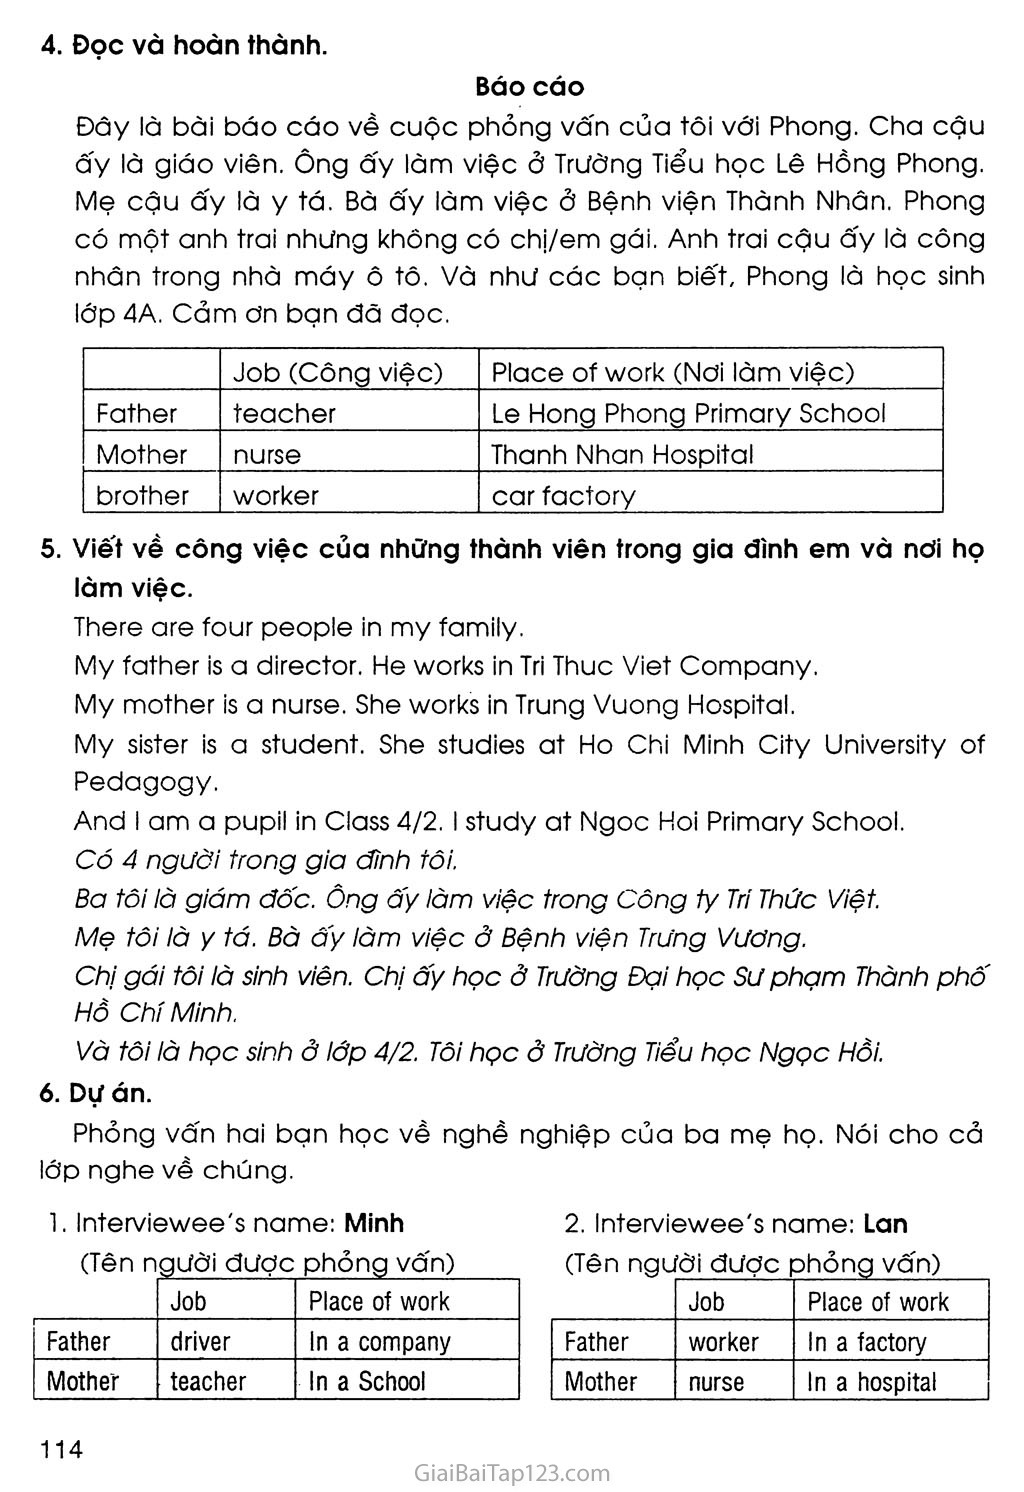 Giải tiếng Anh lớp 4 UNIT 12: WHAT DOES YOUR FATHER DO?